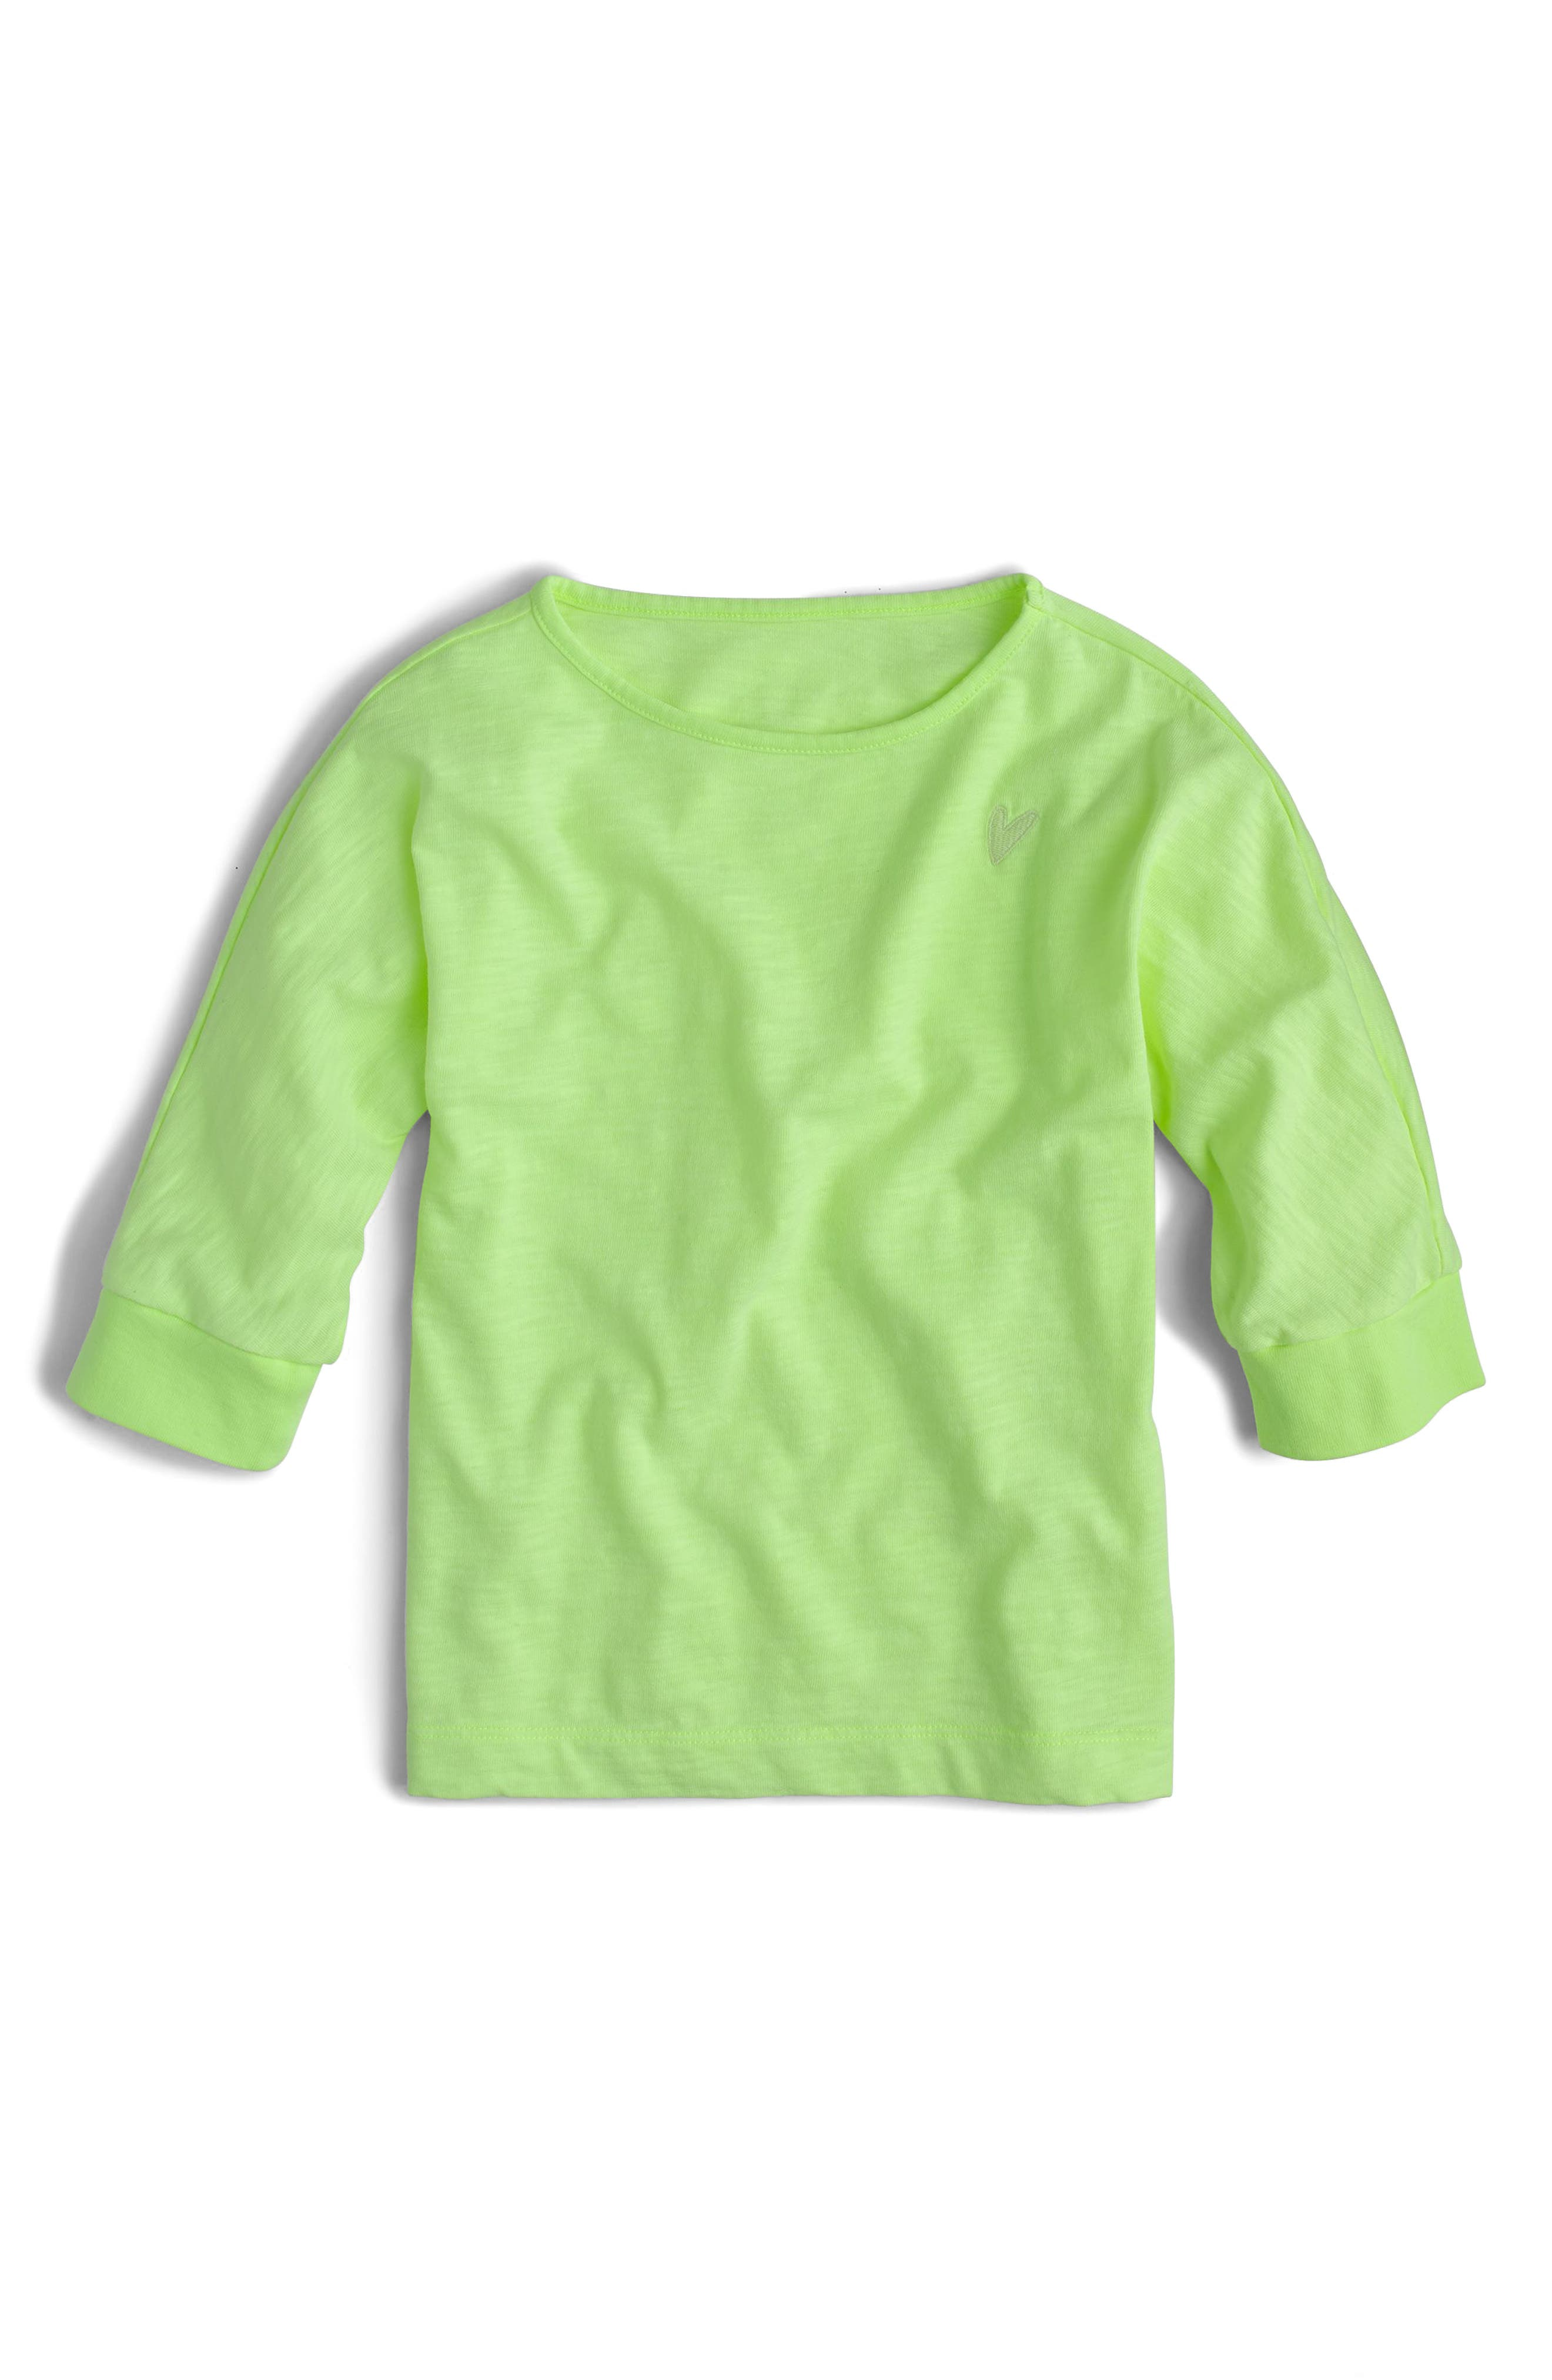 Main Image - crewcuts by J.Crew Heart Appliqué Tee (Toddler Girls, Little Girls & Big Girls)